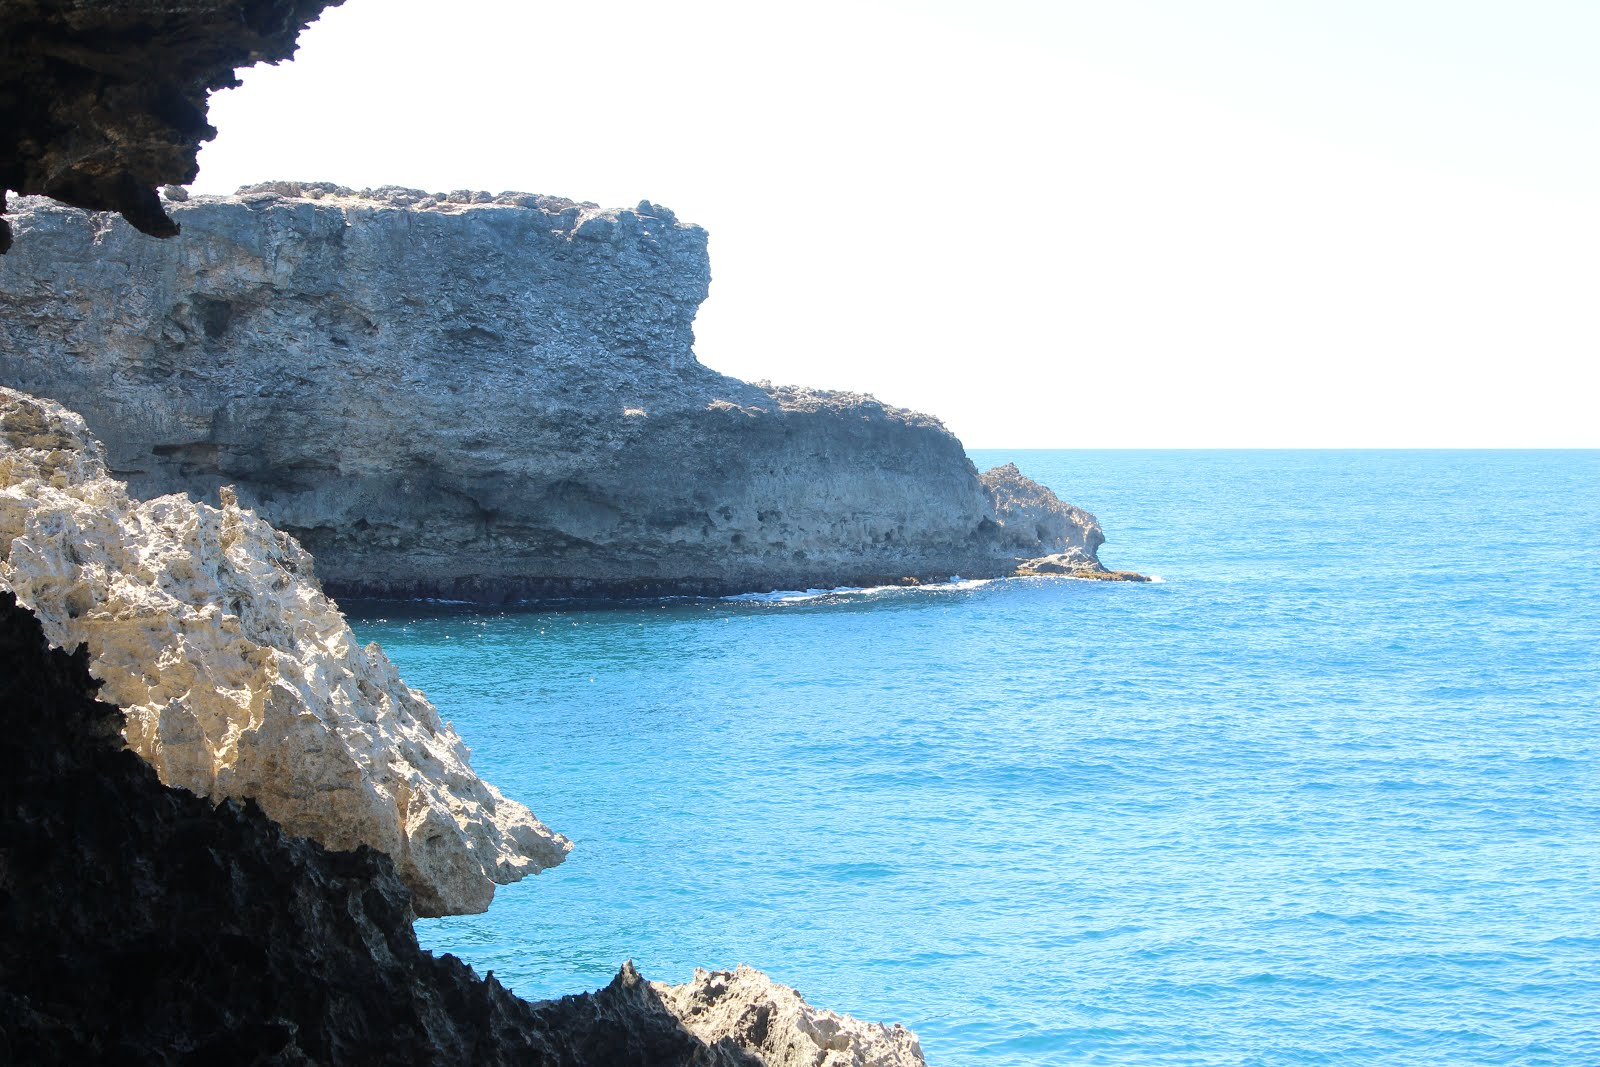 Sea View Animal Flower Cave North Point St Lucy Barbados